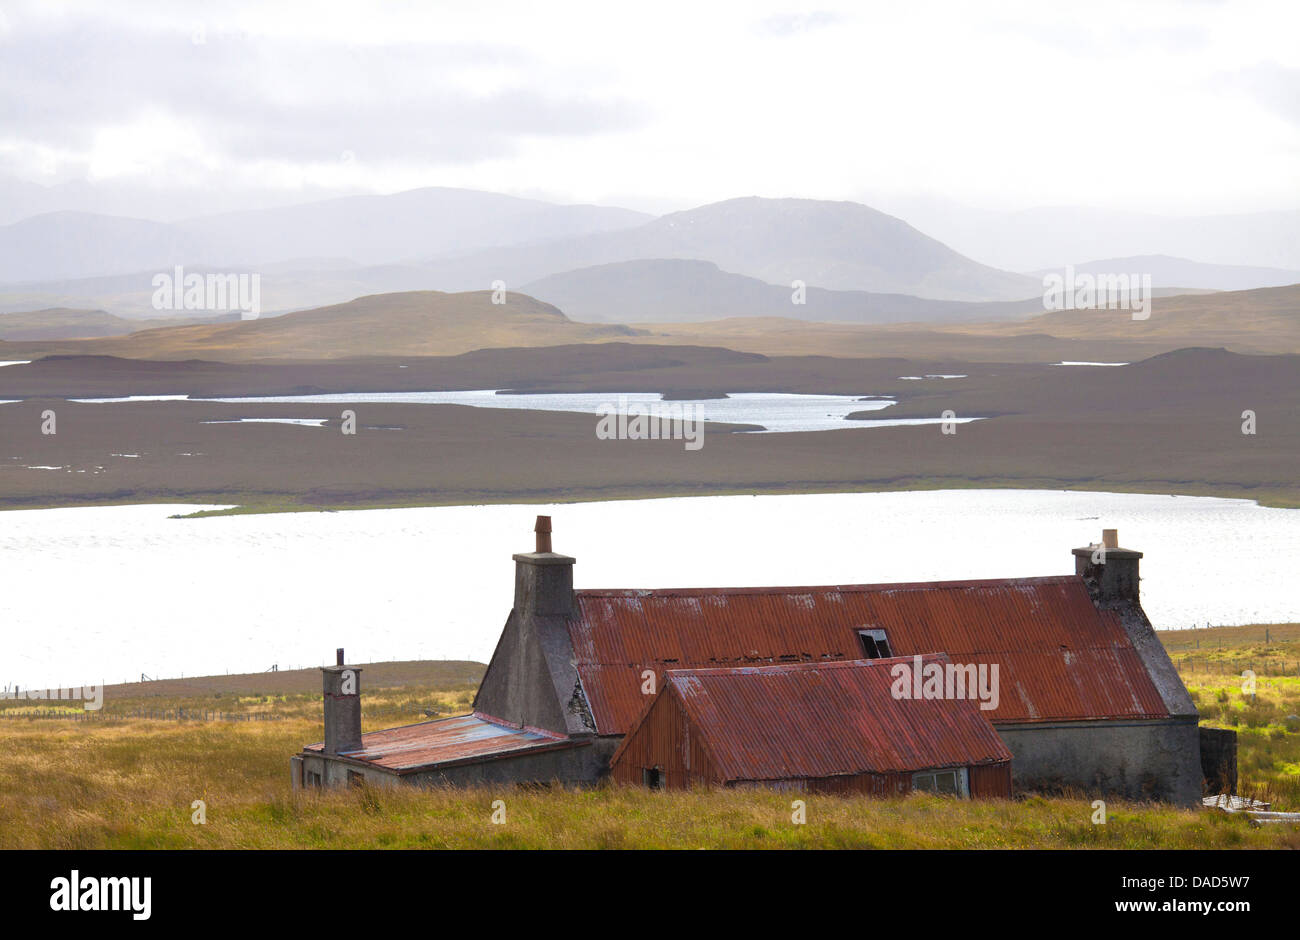 Farmhouse with red iron roof overlooking lochs and mountains off the A858 south of Carloway, Isle of Lewis, Scotland, - Stock Image